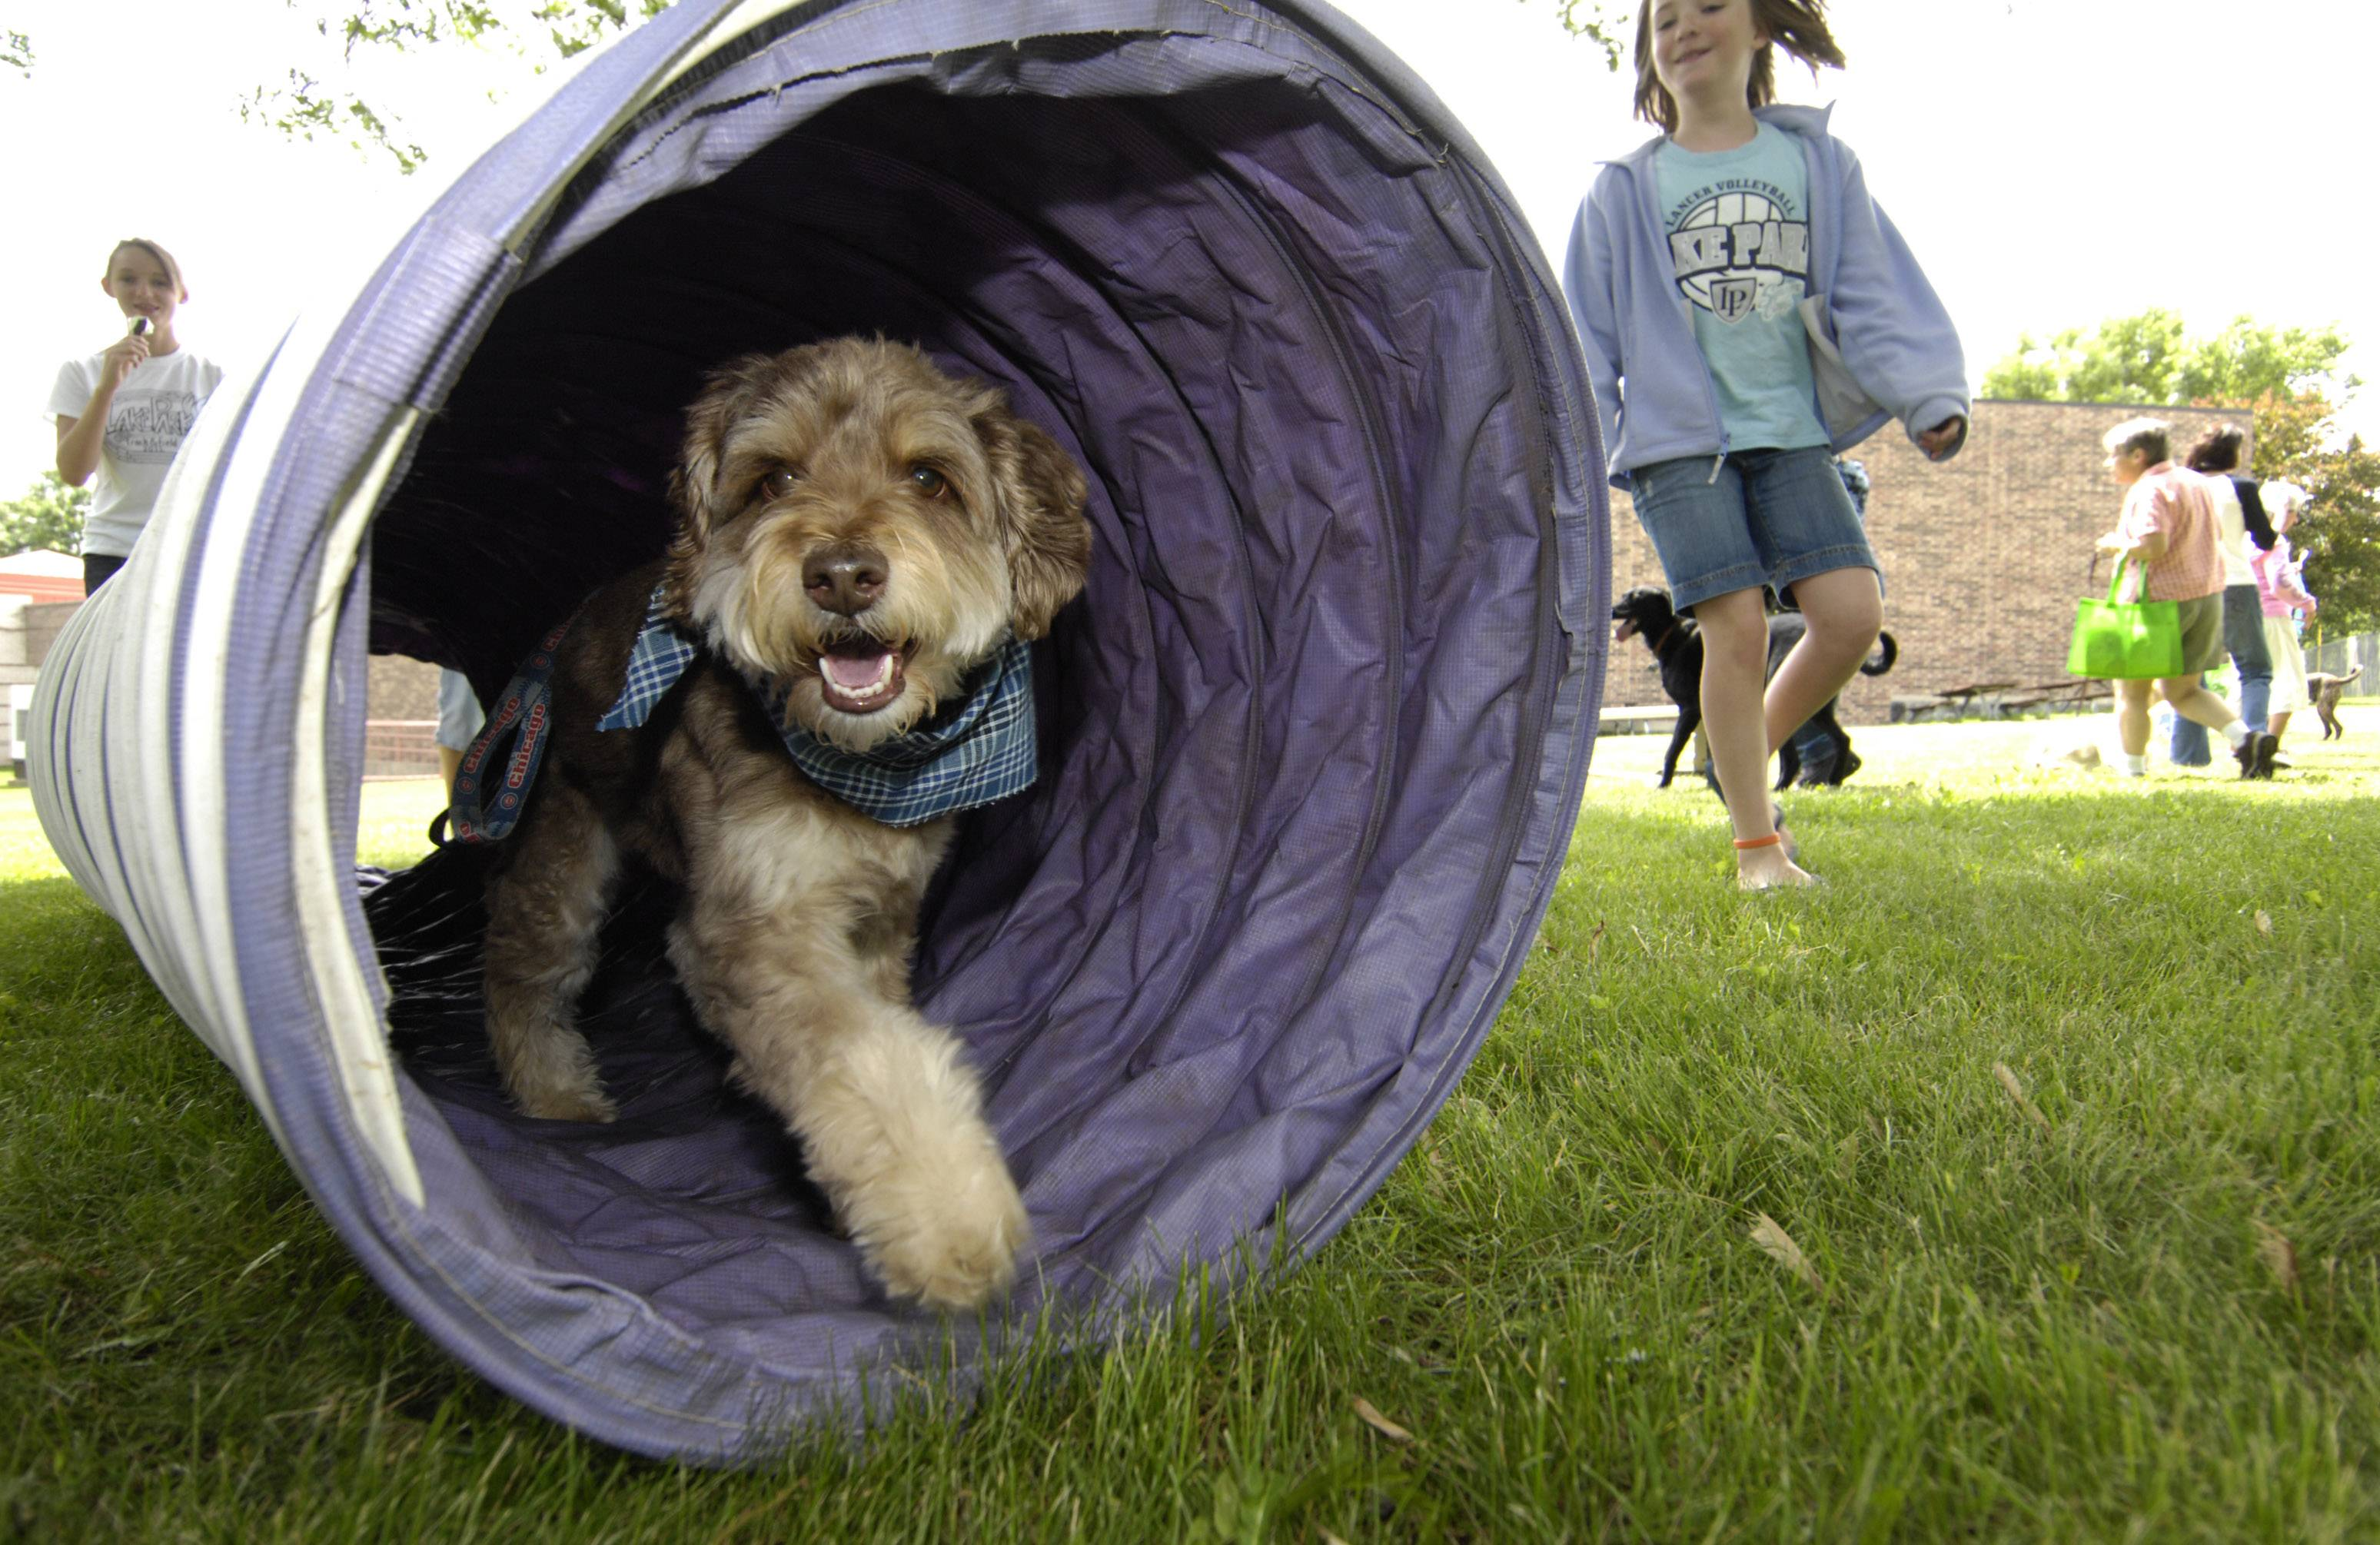 Dogs can navigate an agility/obstacle course Sunday, June 8, during Medinah Park District's Dog Day of Summer event.